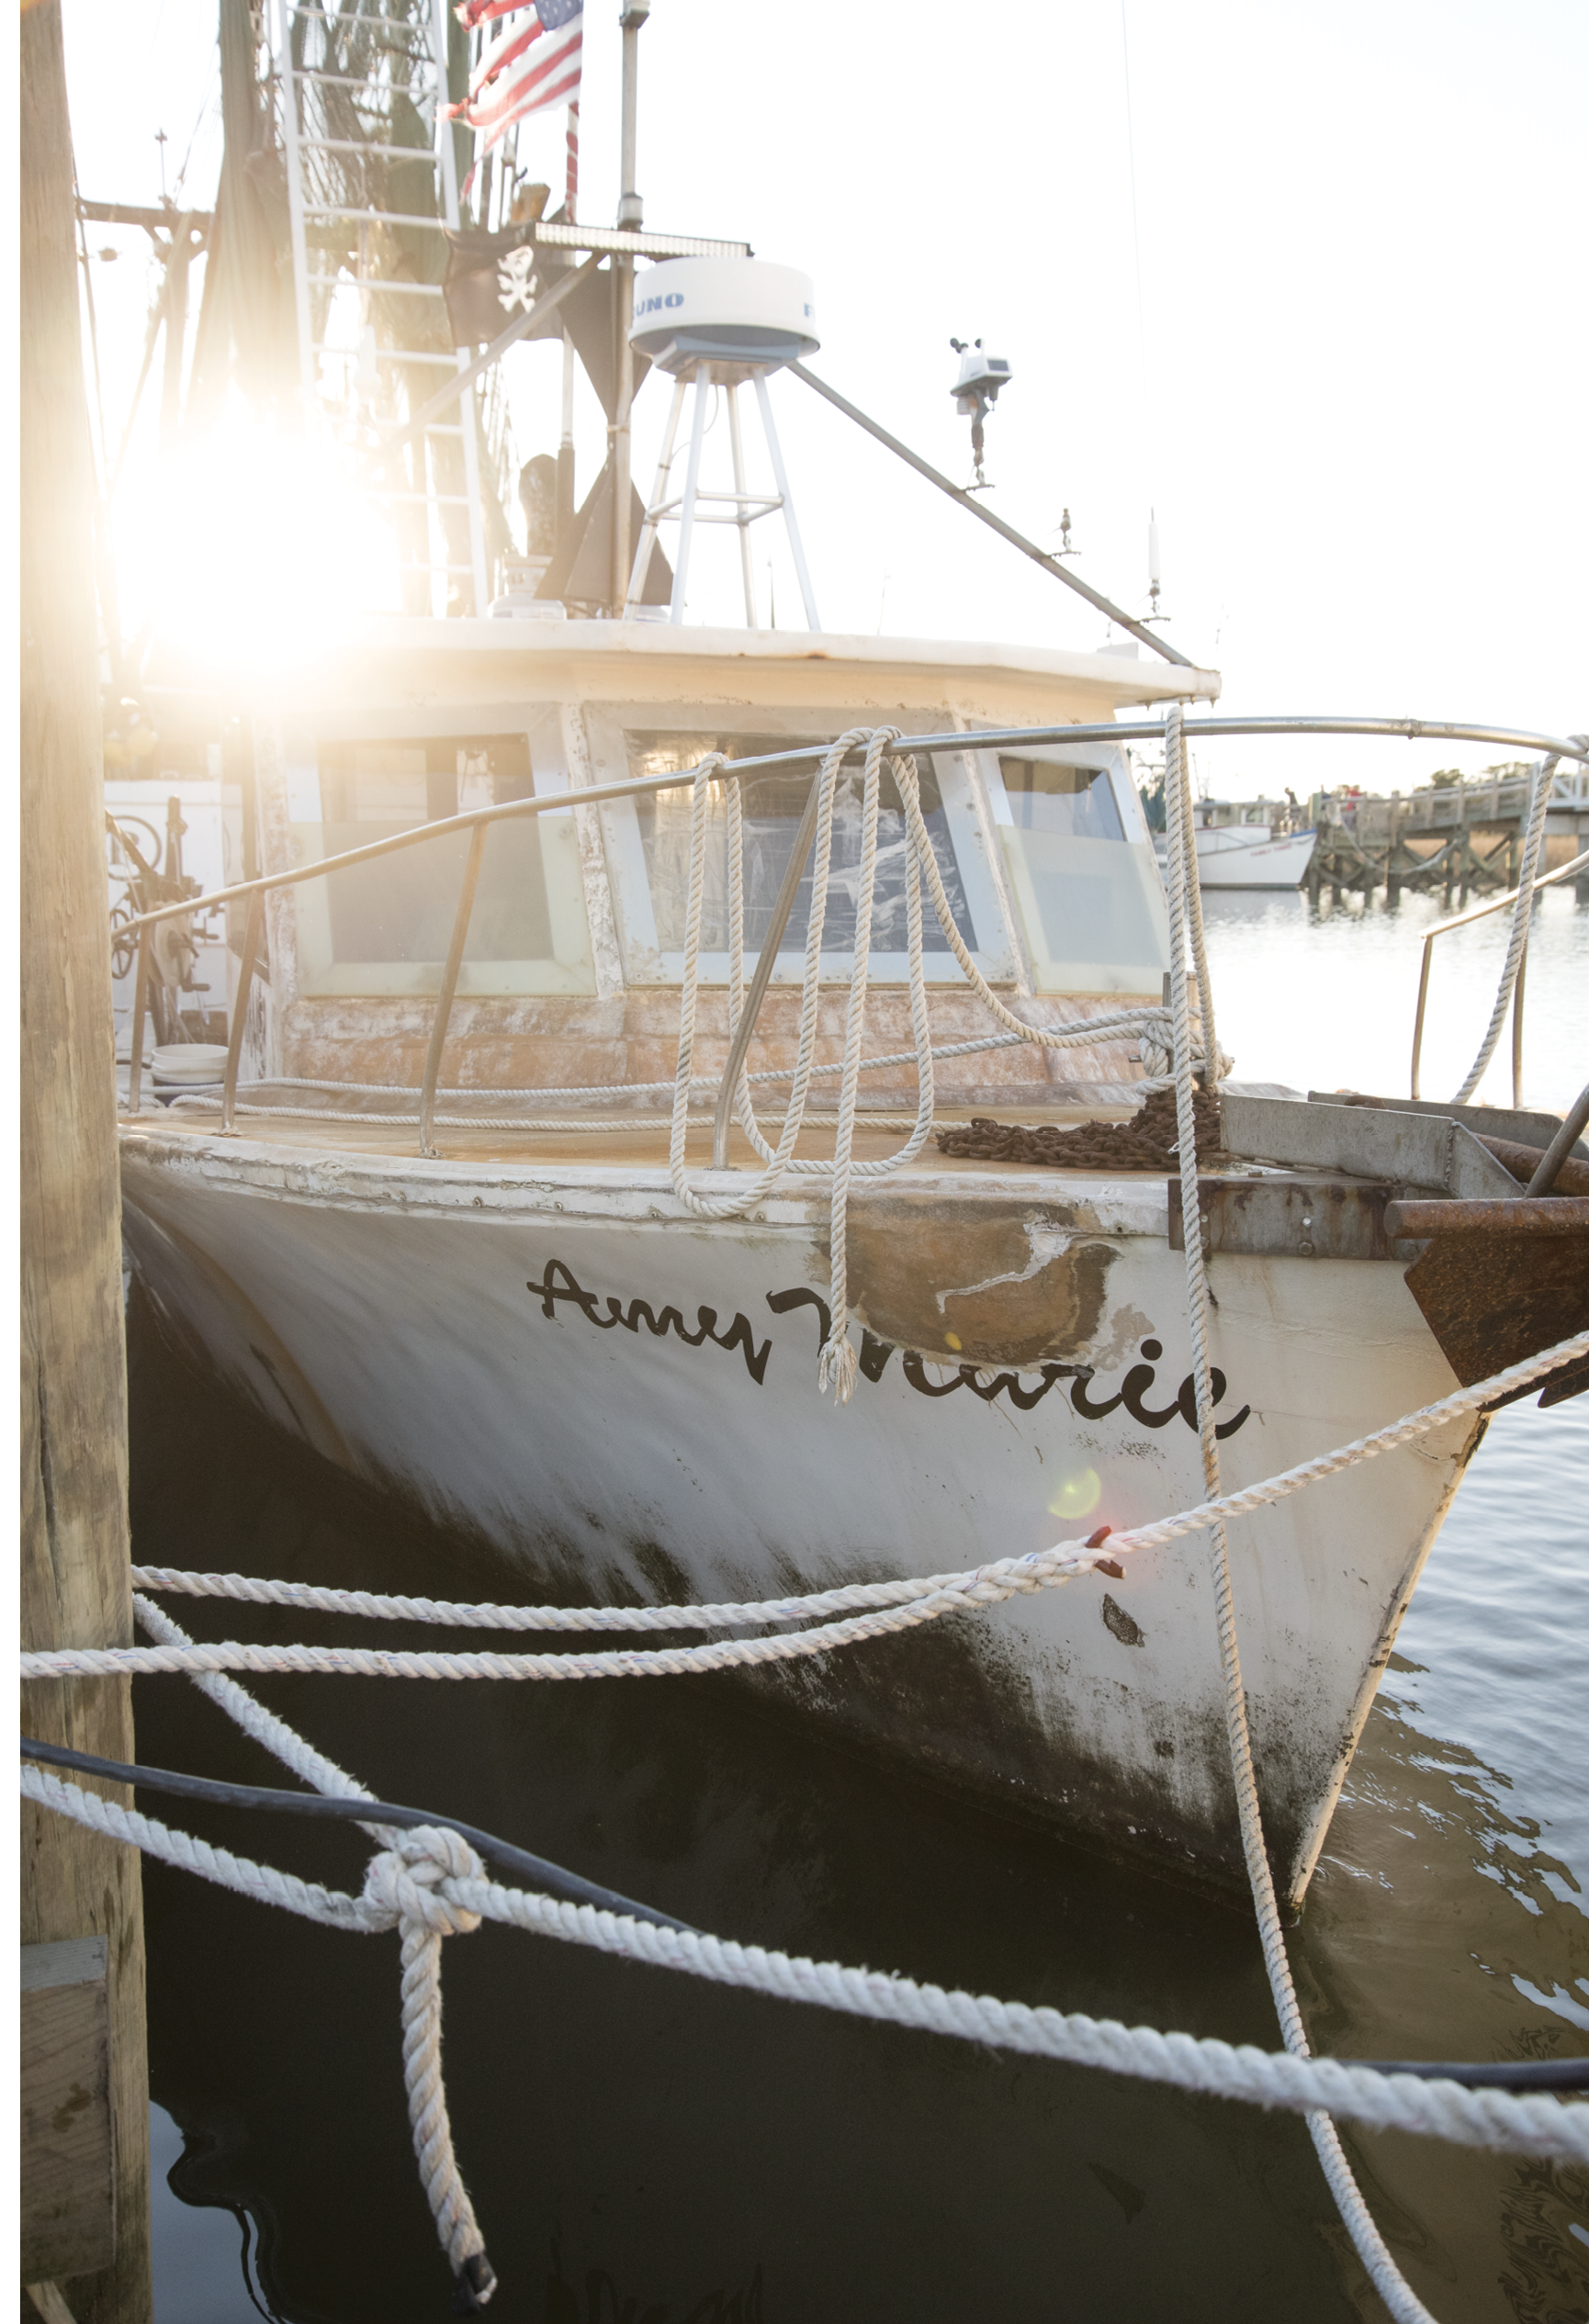 The Marhefkas' 35-year-old fiberglass workhorse, the Amy Marie